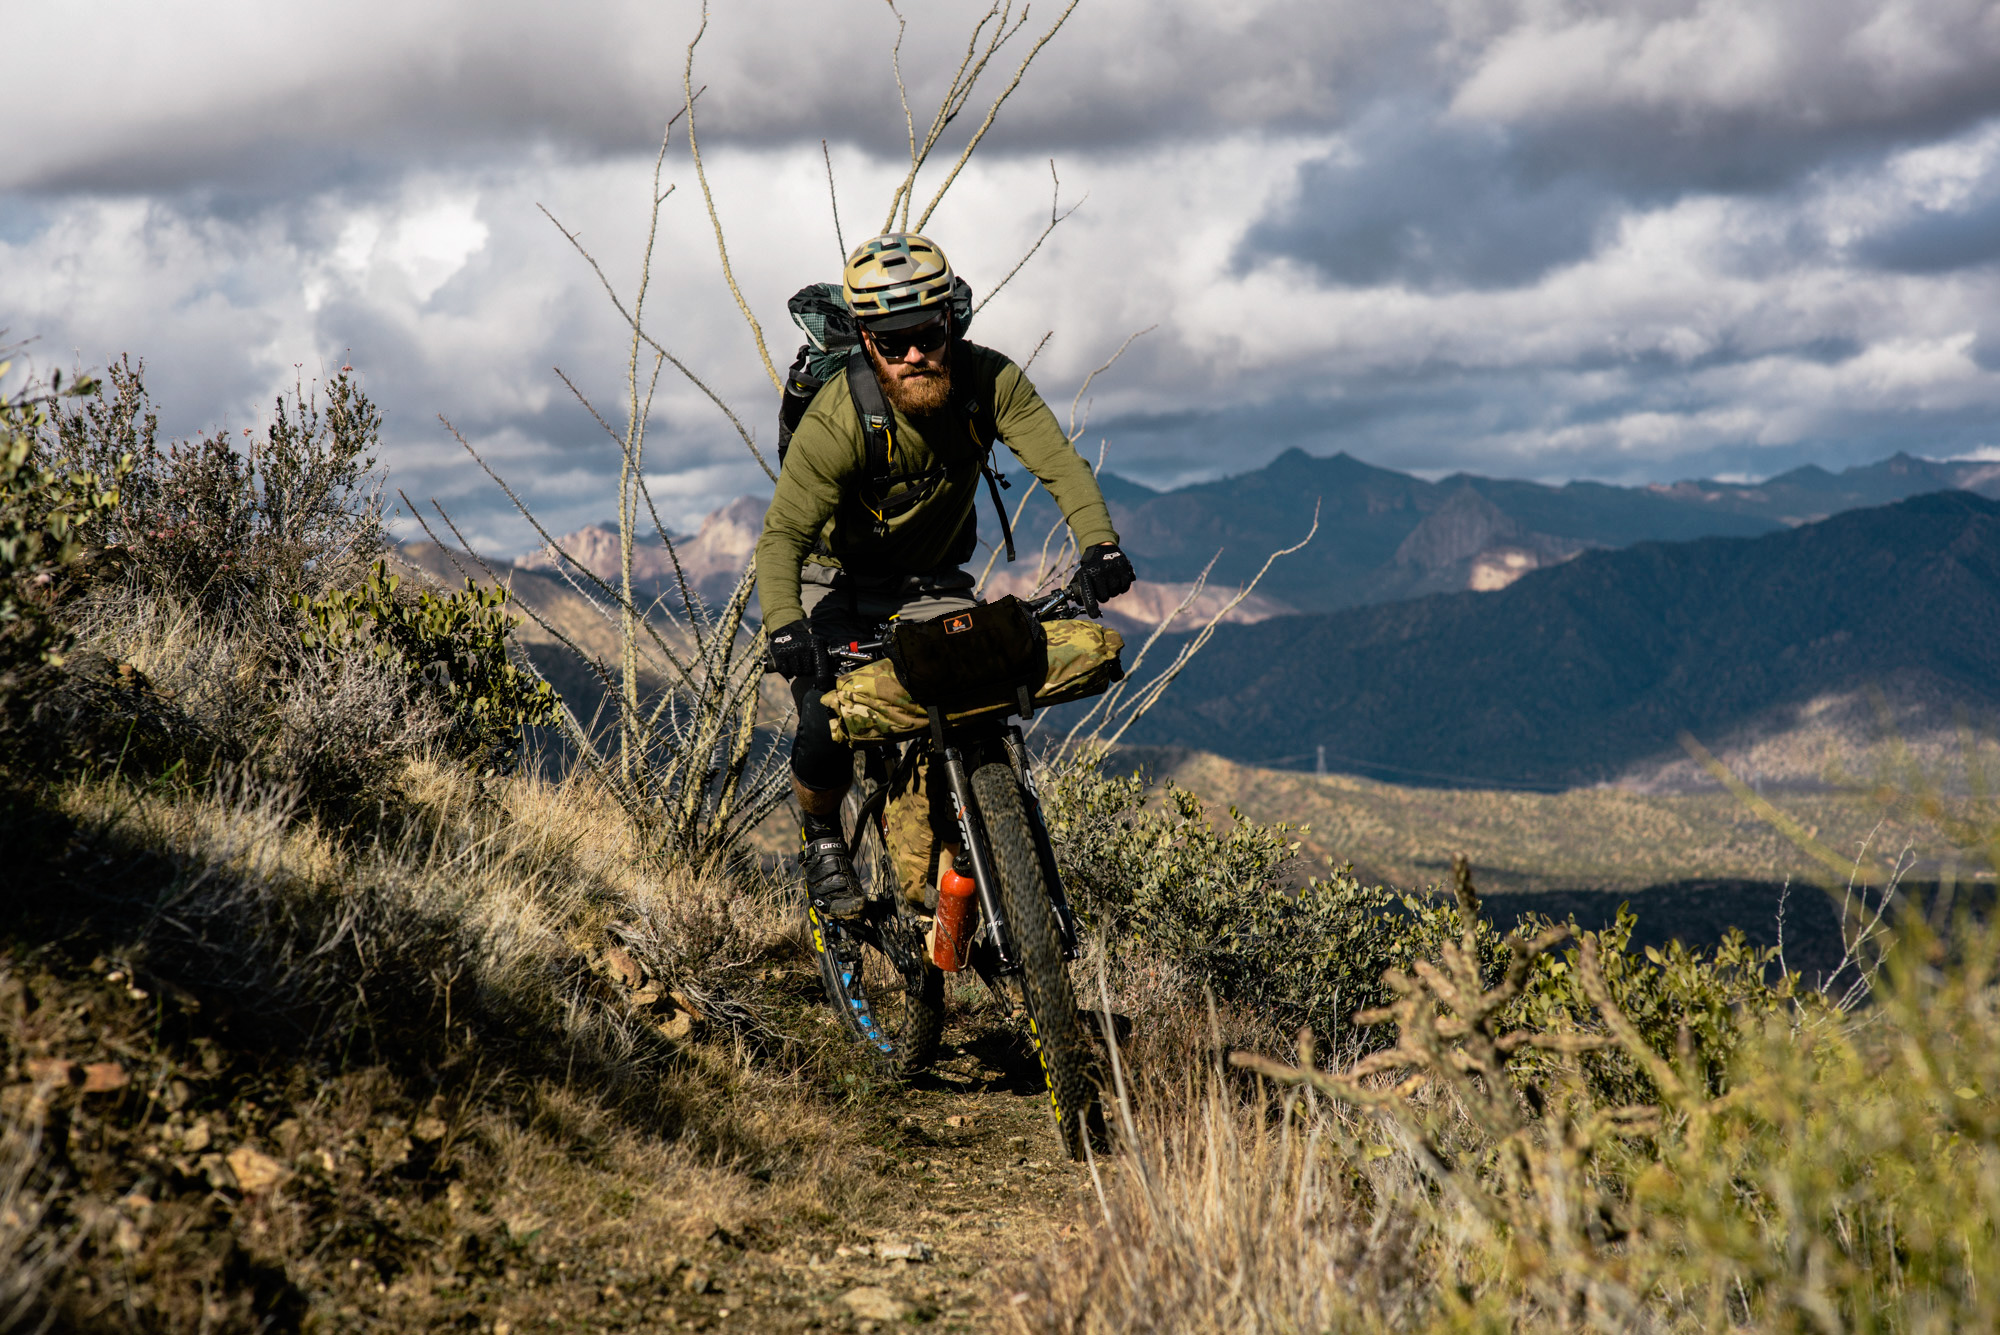 Joey Parent keeps it light up front w. a sleeping pad in the main roll and ride essentials in the Piñon Pocket - Gila- AZT #teamchumbausa